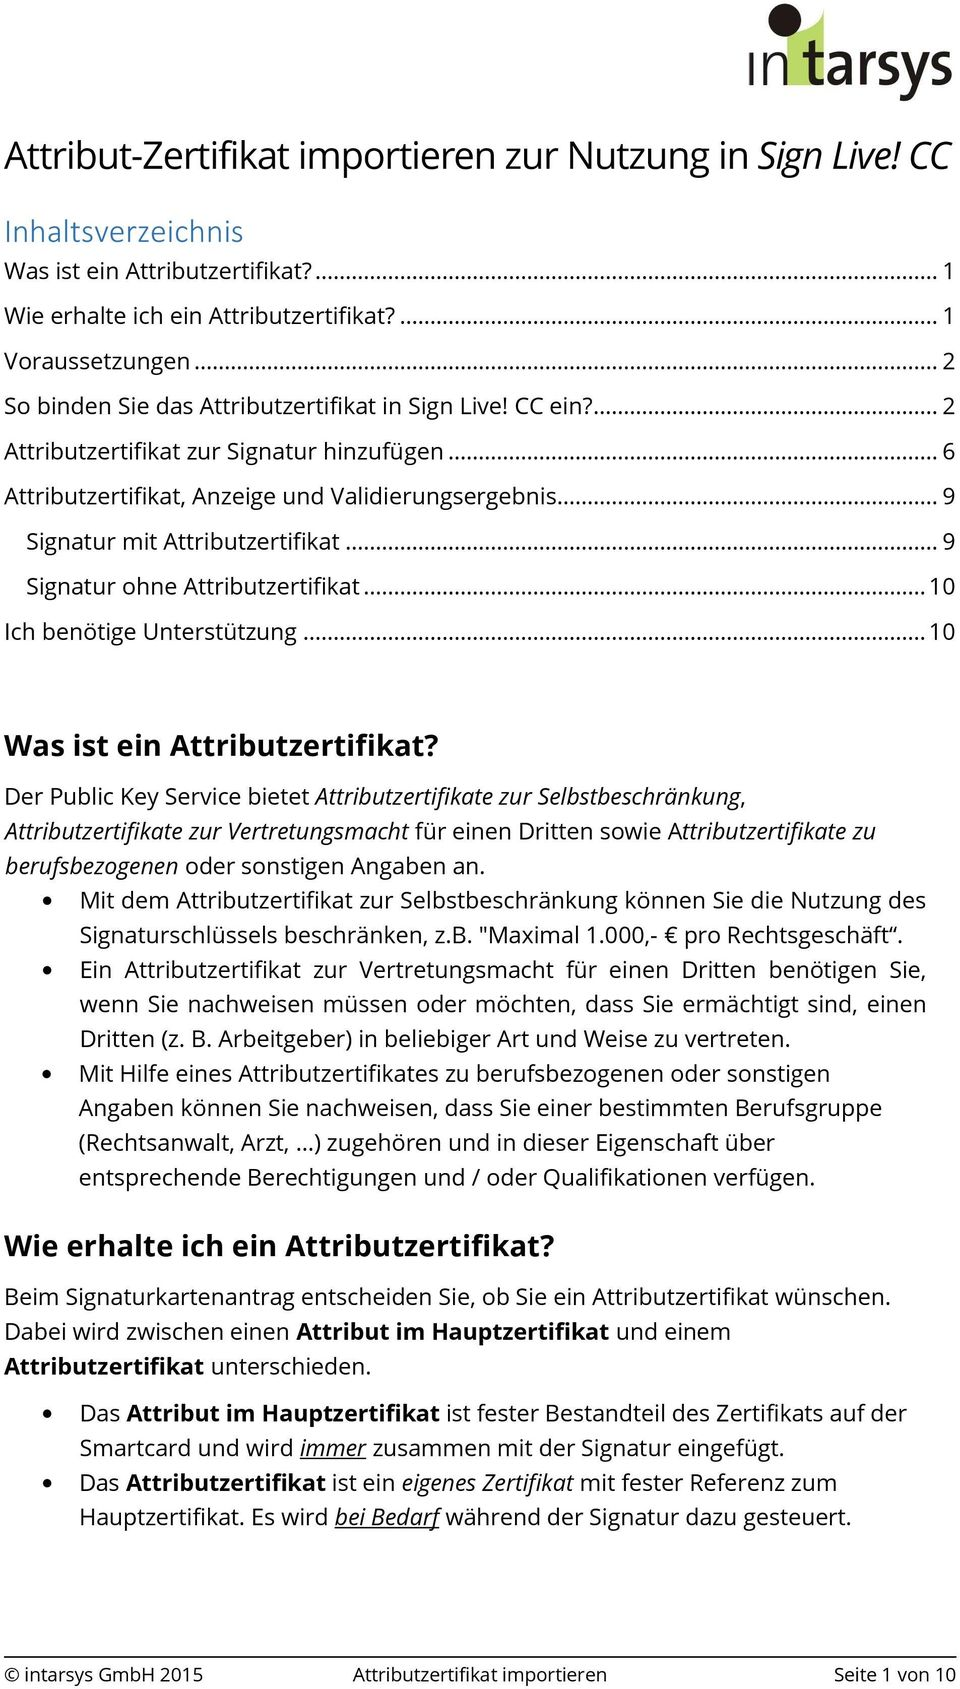 .. 9 Signatur mit Attributzertifikat... 9 Signatur ohne Attributzertifikat... 10 Ich benötige Unterstützung... 10 Was ist ein Attributzertifikat?